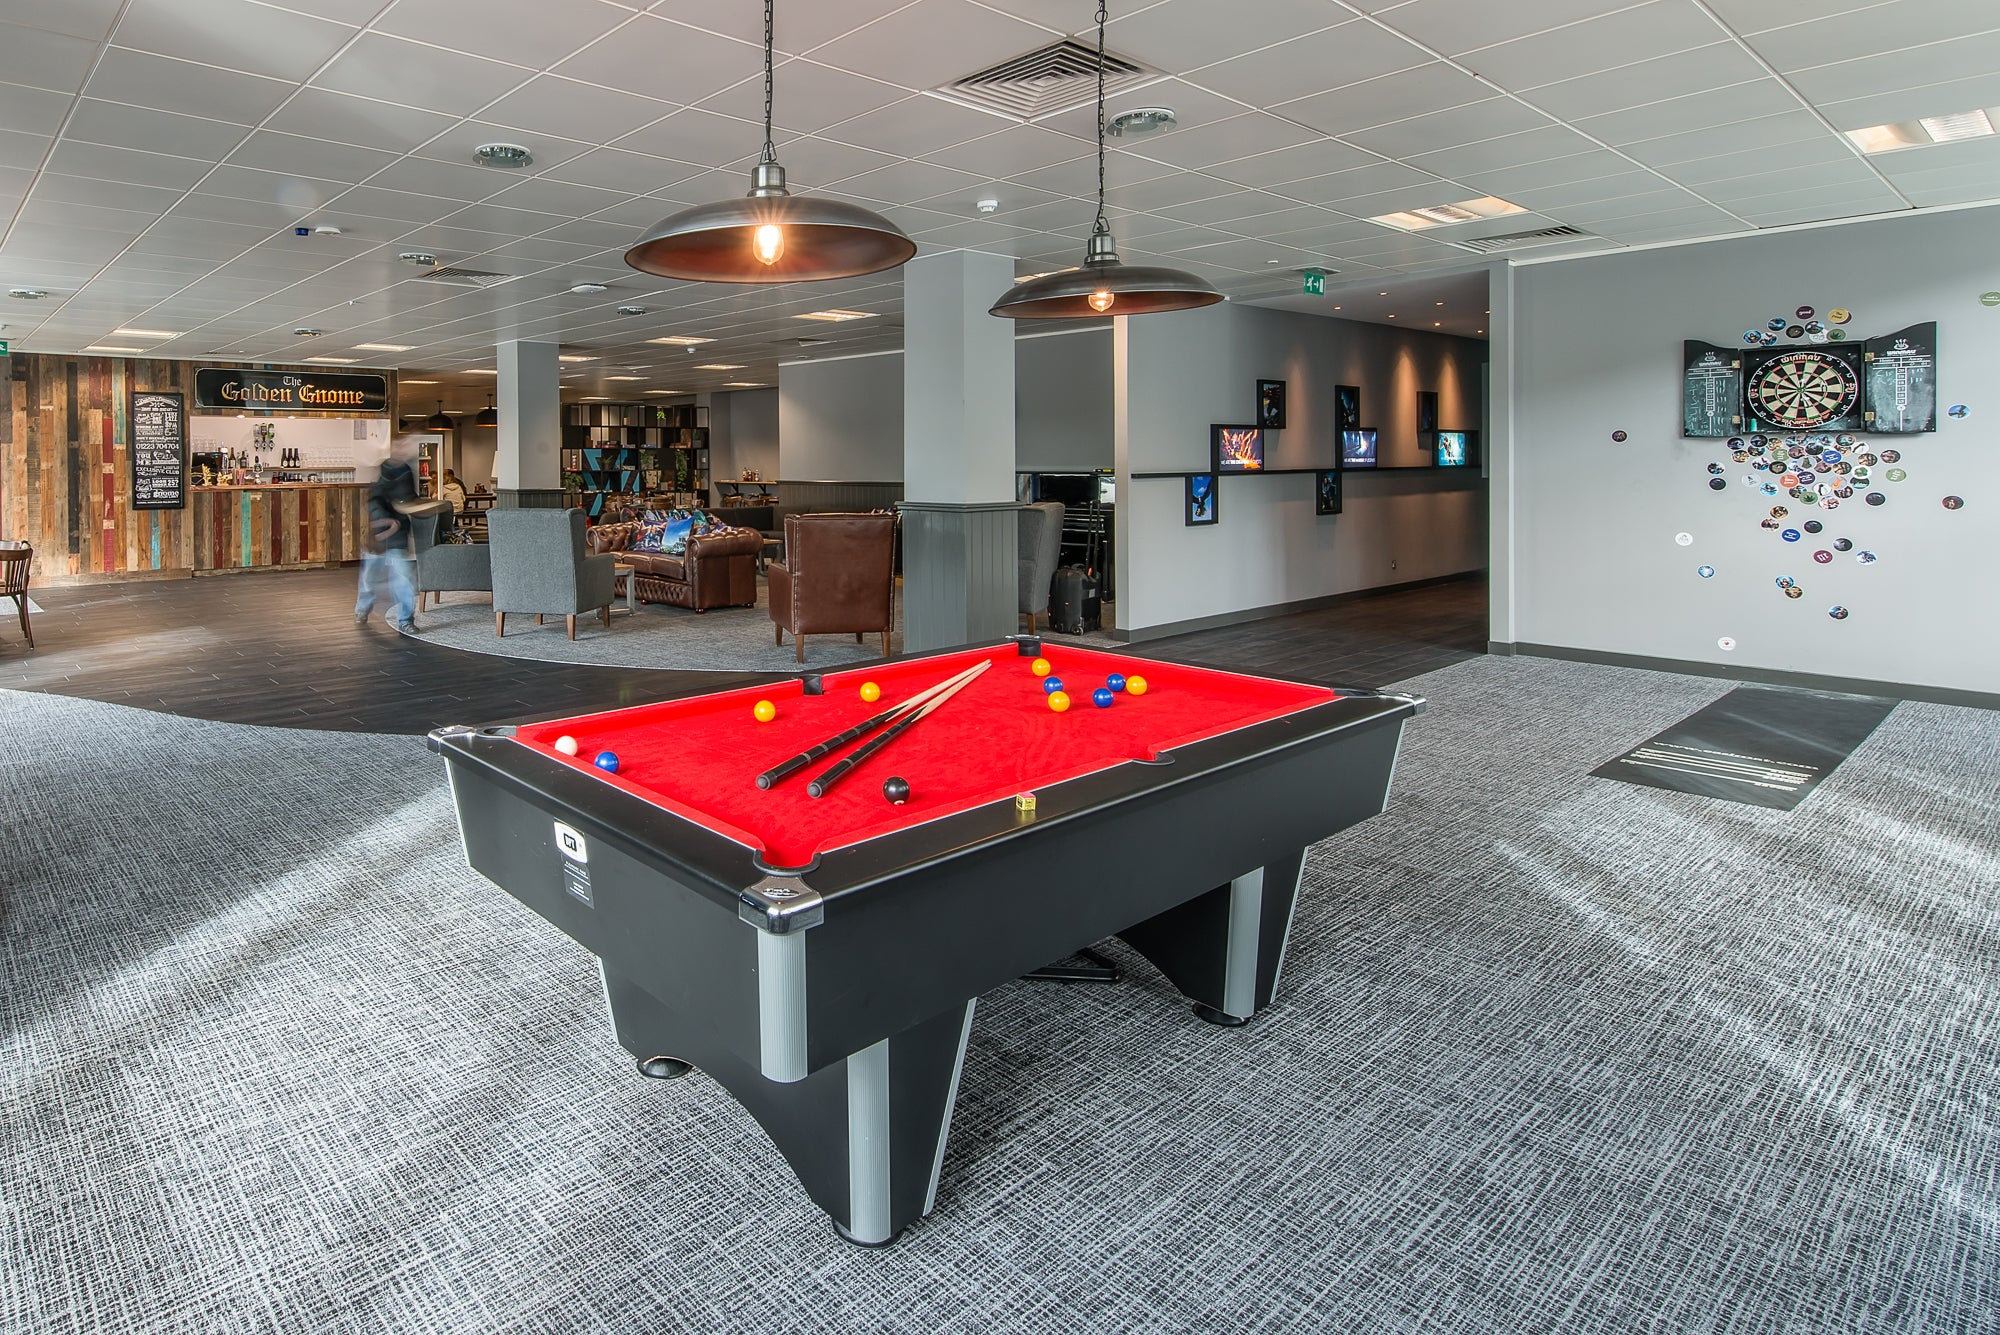 Pool table in office with retro lighting